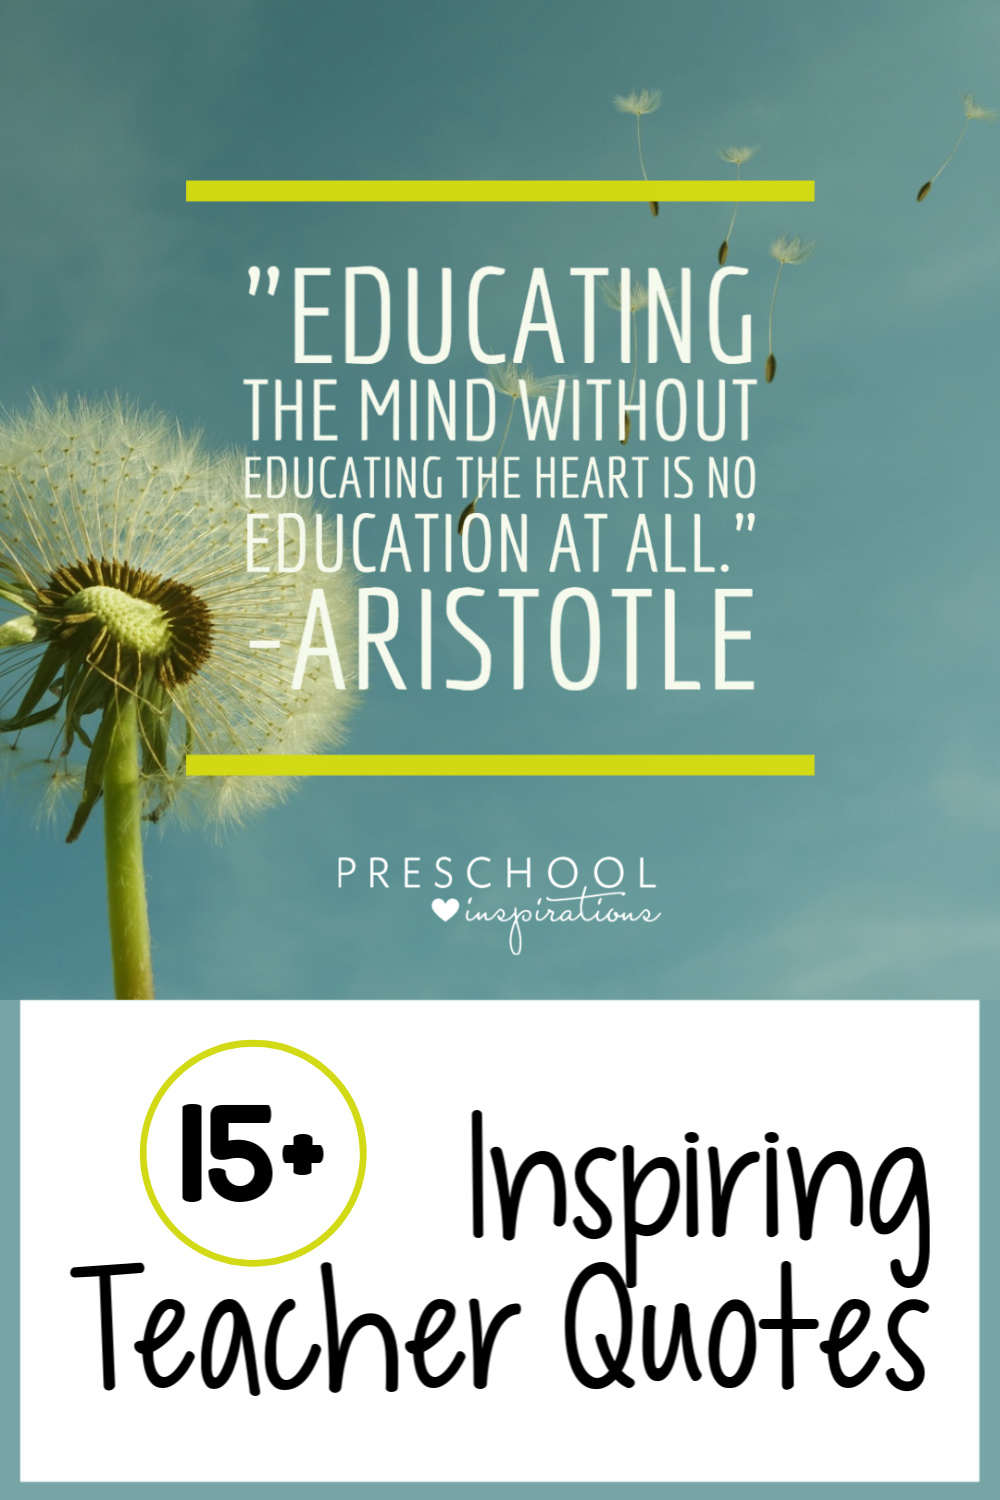 Inspiring Teacher Quotes Preschool Inspirations